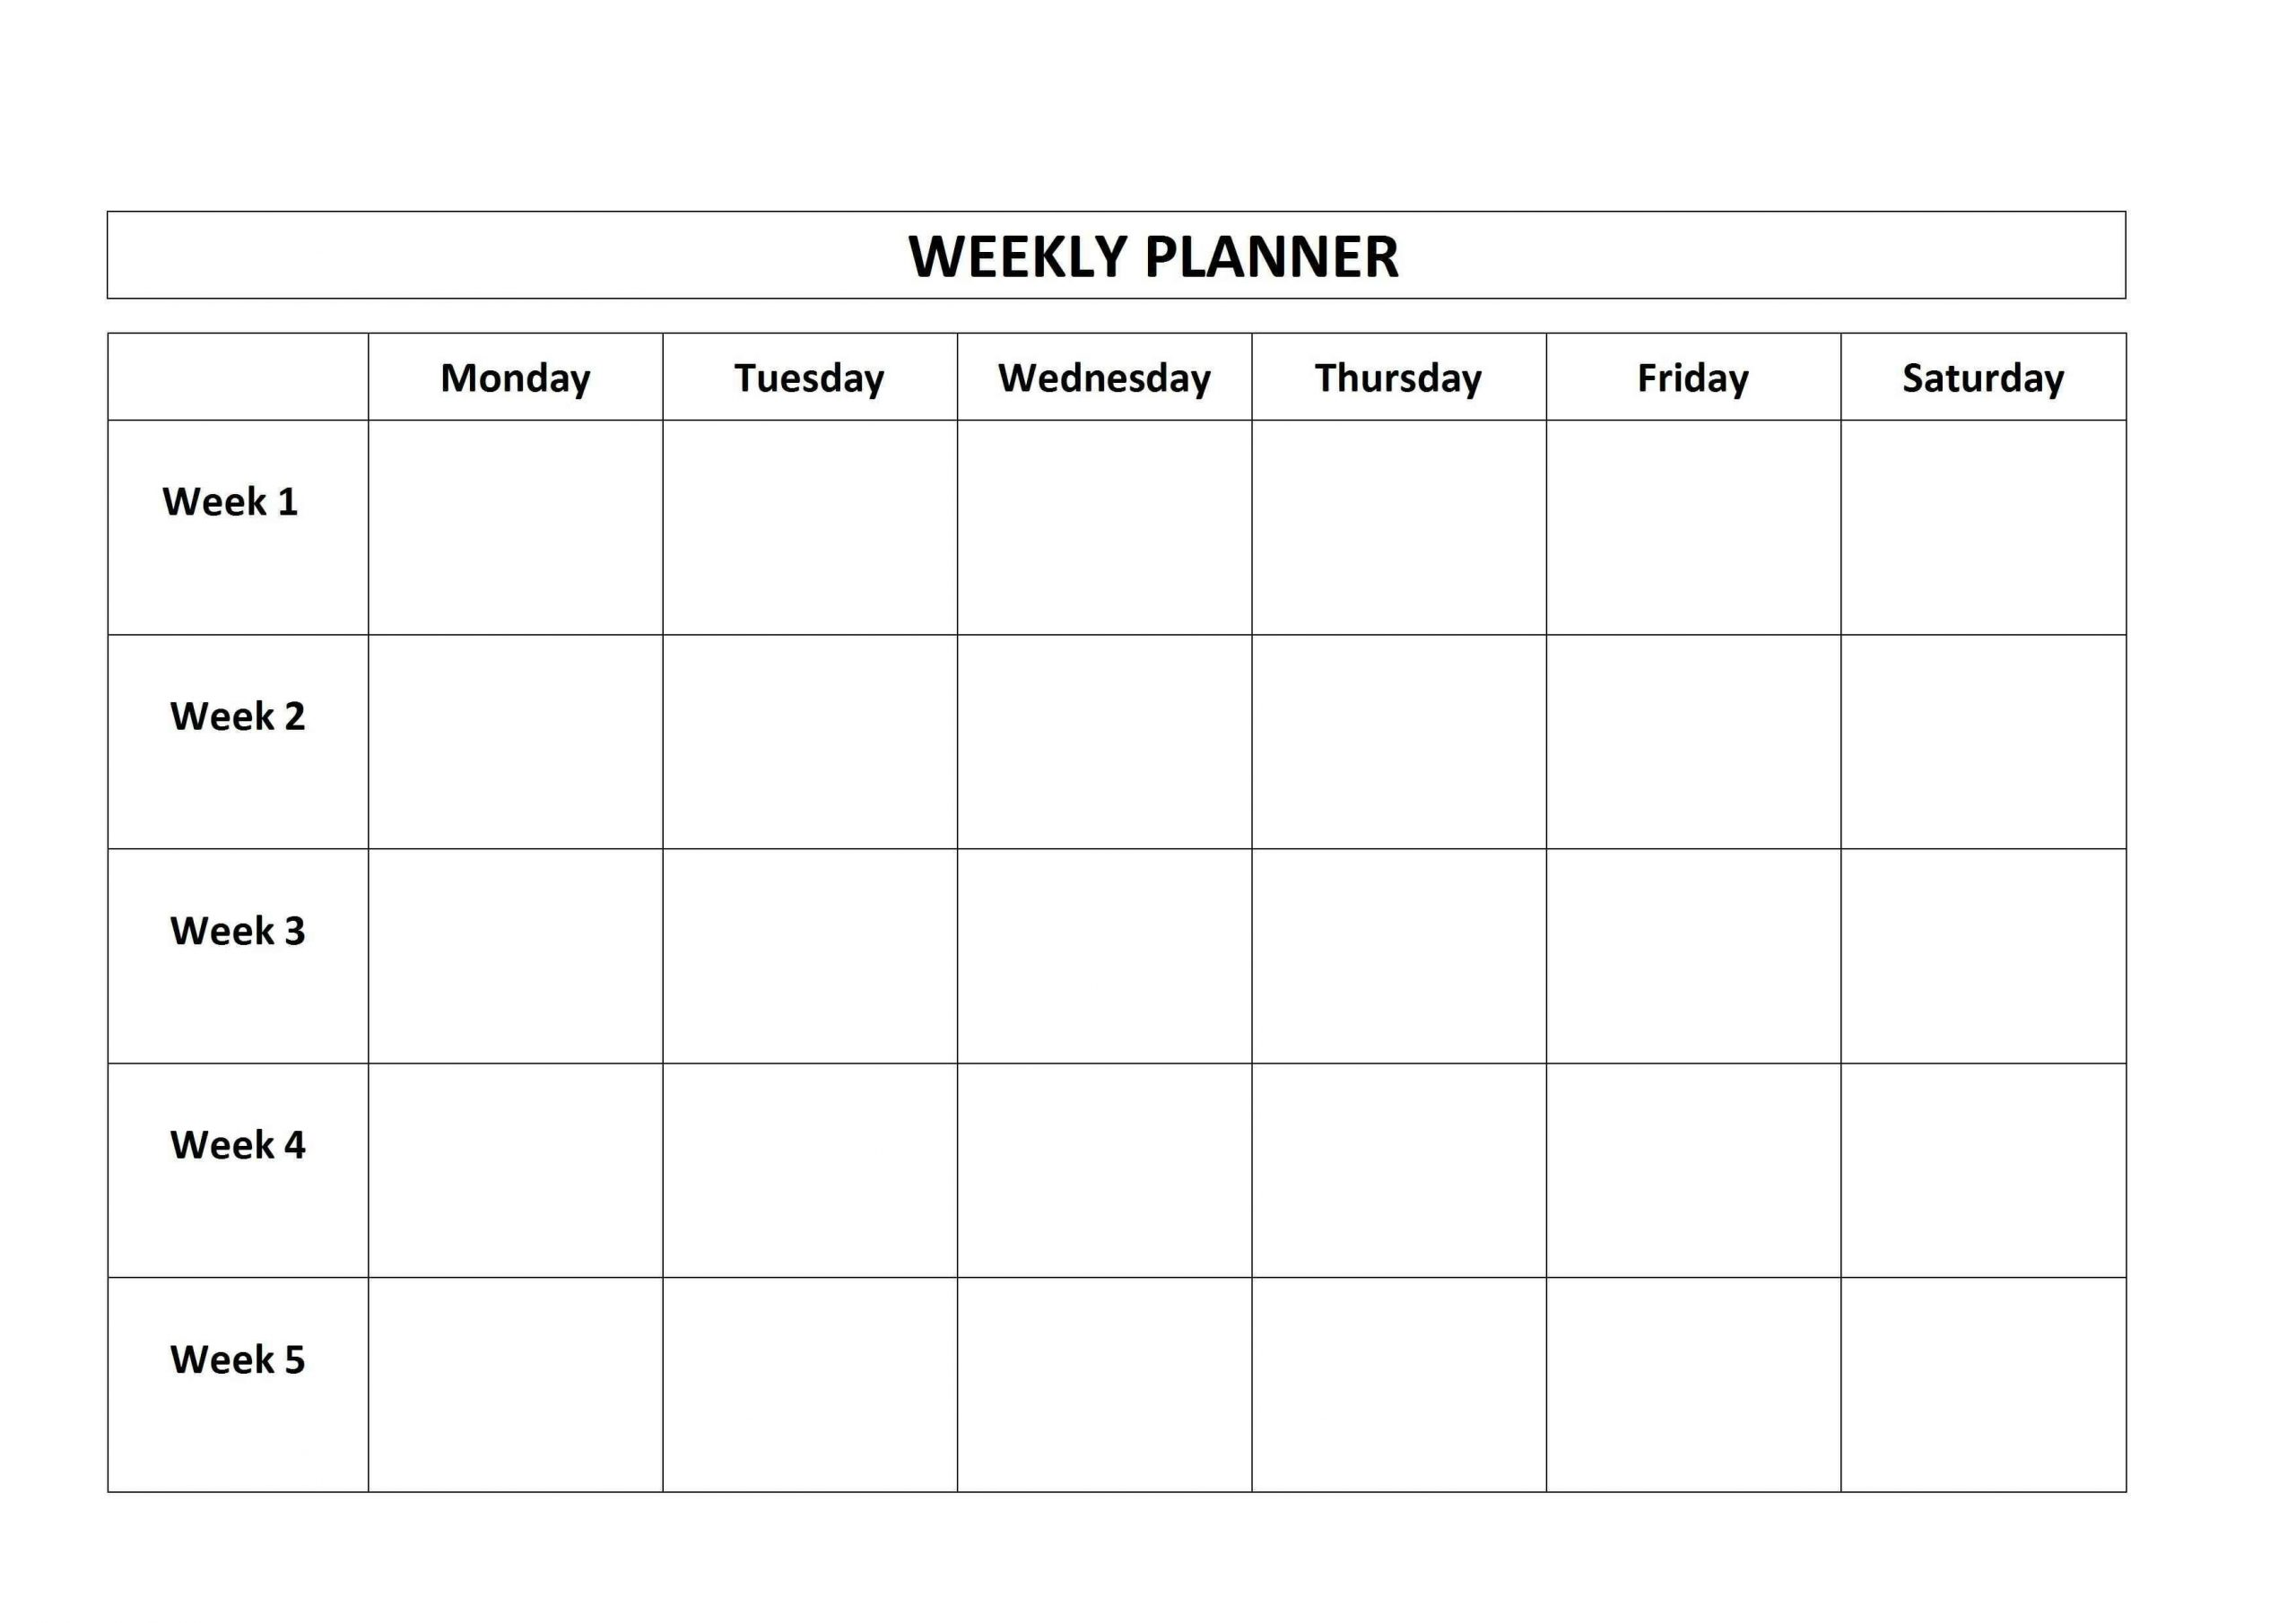 Monday Through Friday Template | Calendar Template Printable Free Printable Weekly Schedule Monday-Fridays